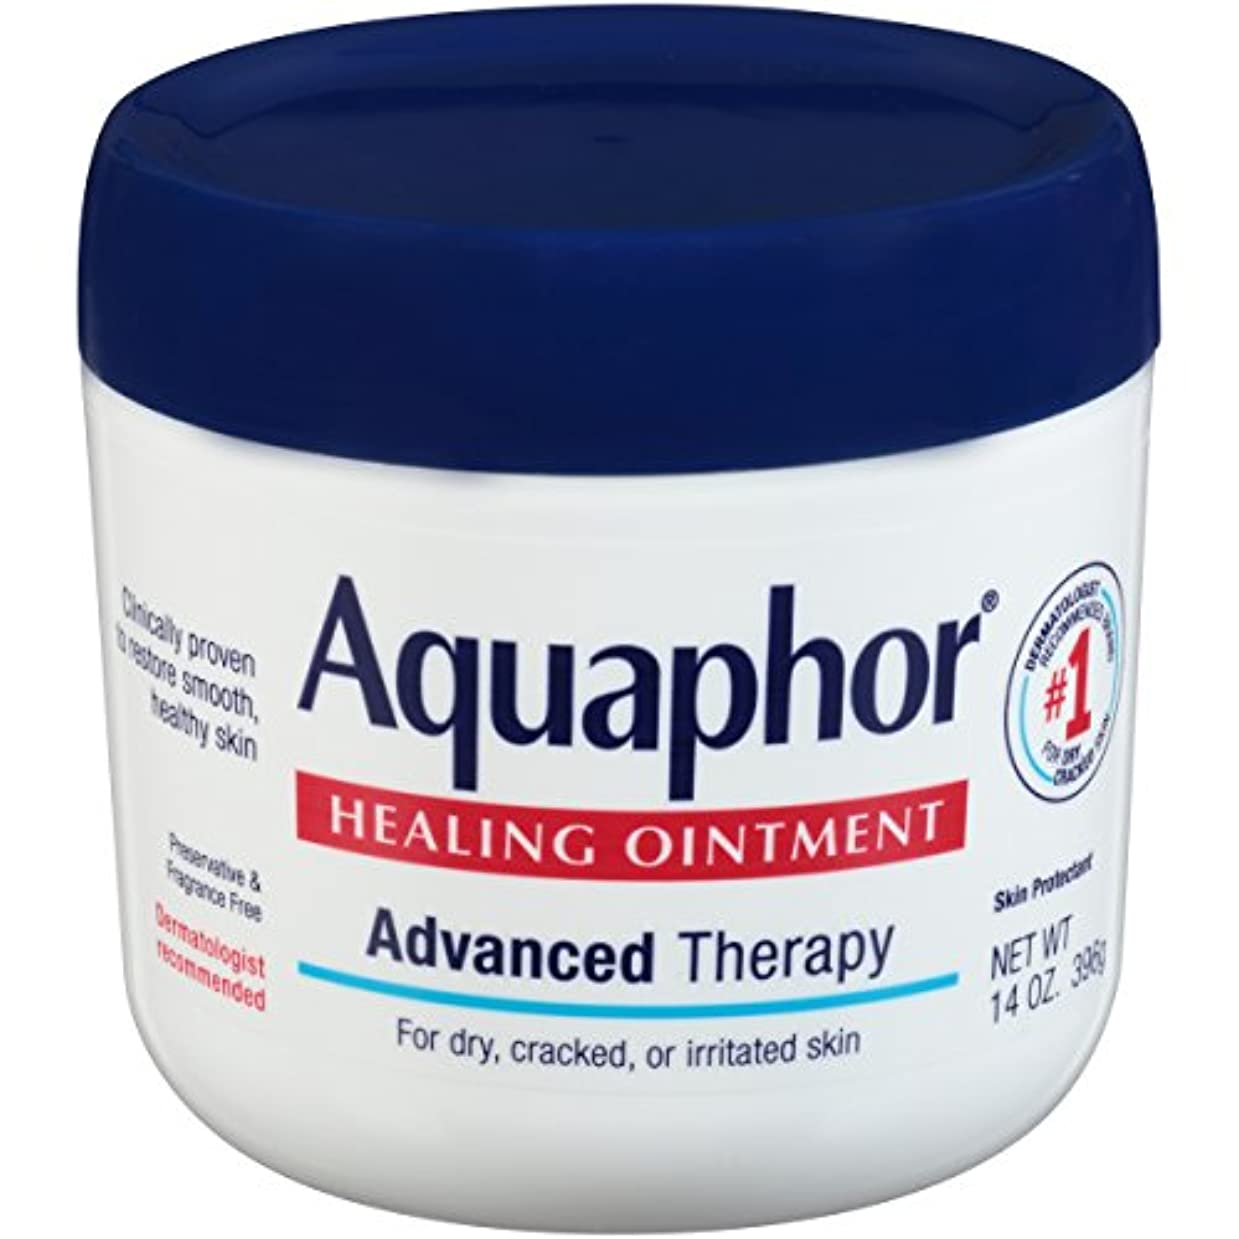 ドレス対抗物理的に海外直送品Aquaphor Advanced Therapy Healing Ointment, 14 oz by Aquaphor